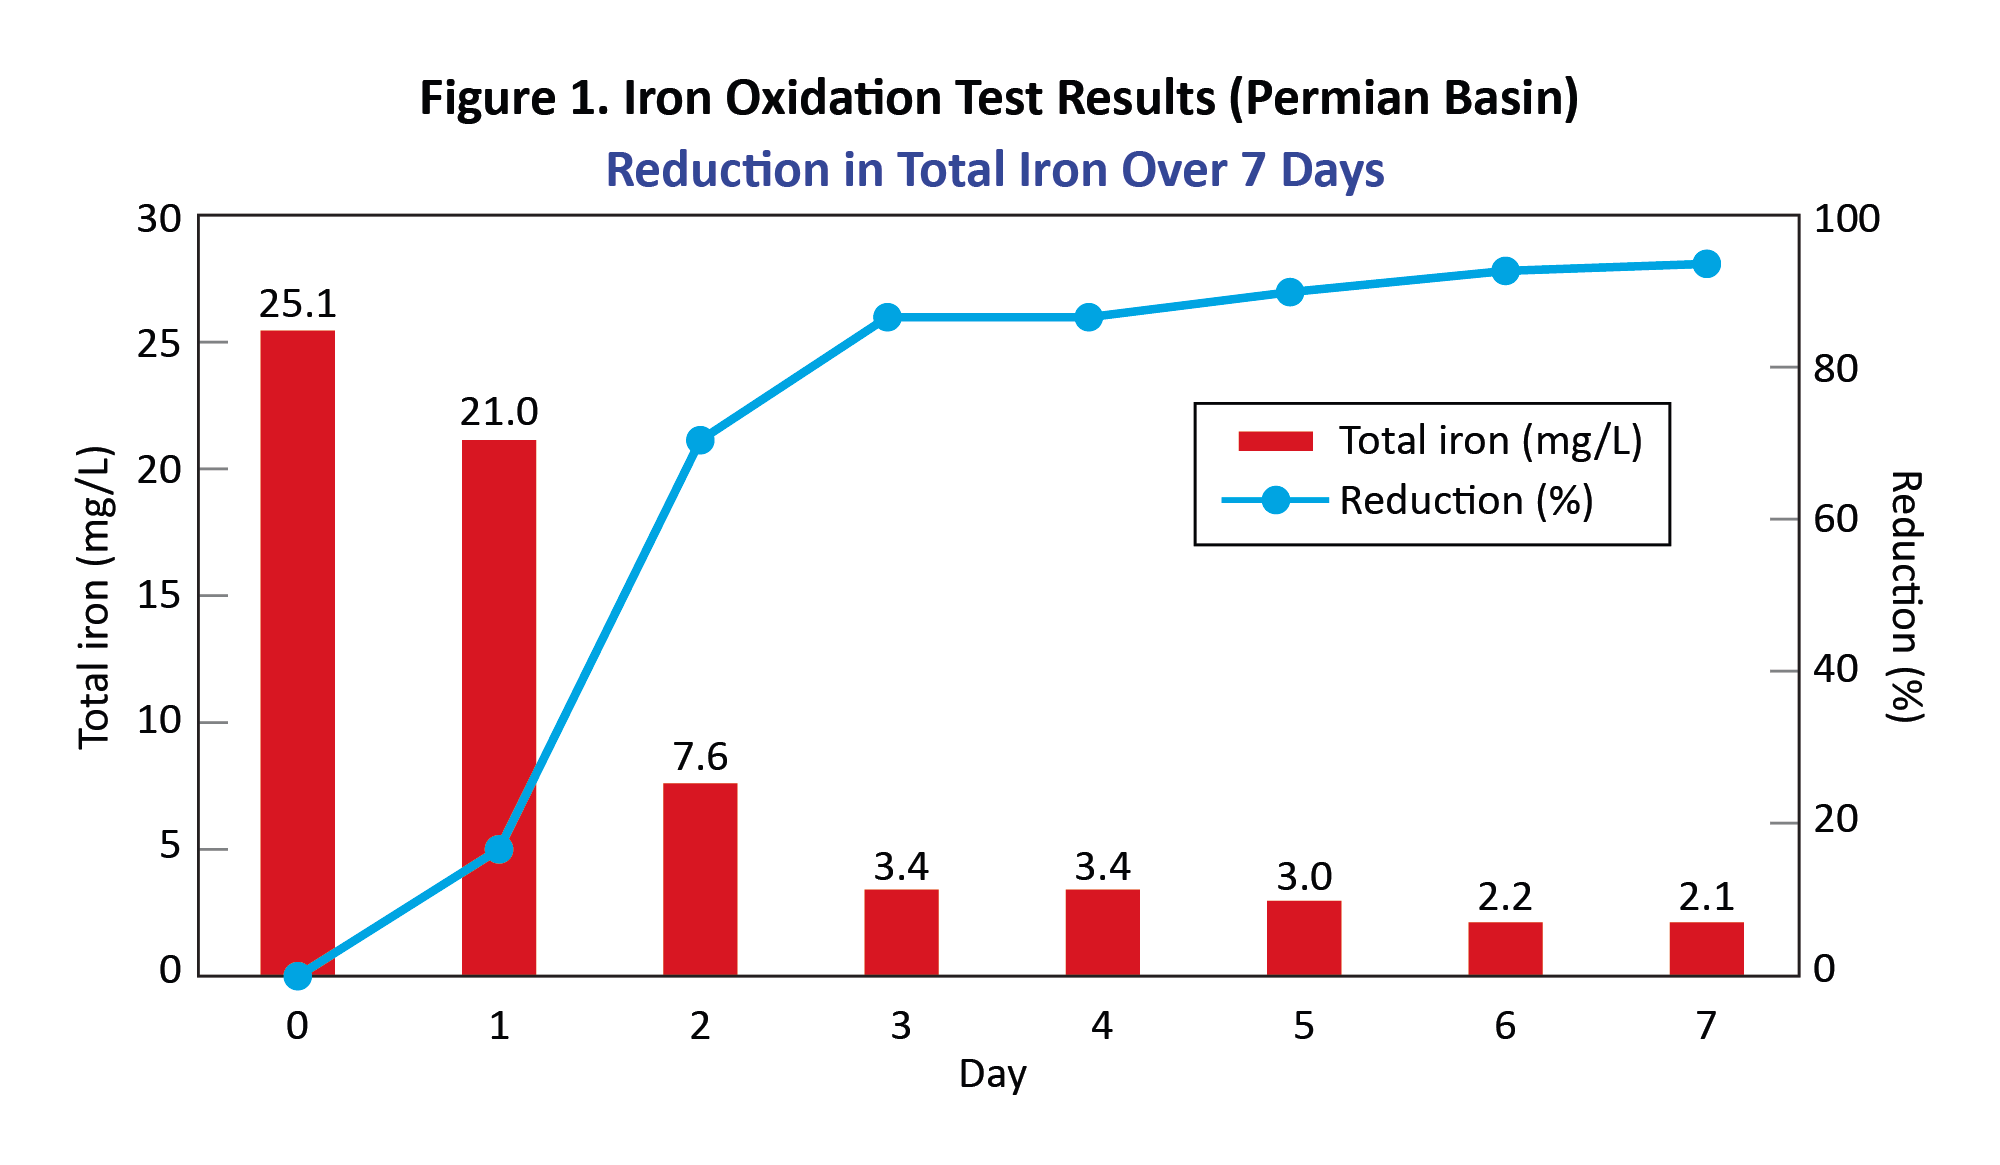 Figure 1. Iron Oxidation Test Results (Permian Basin)